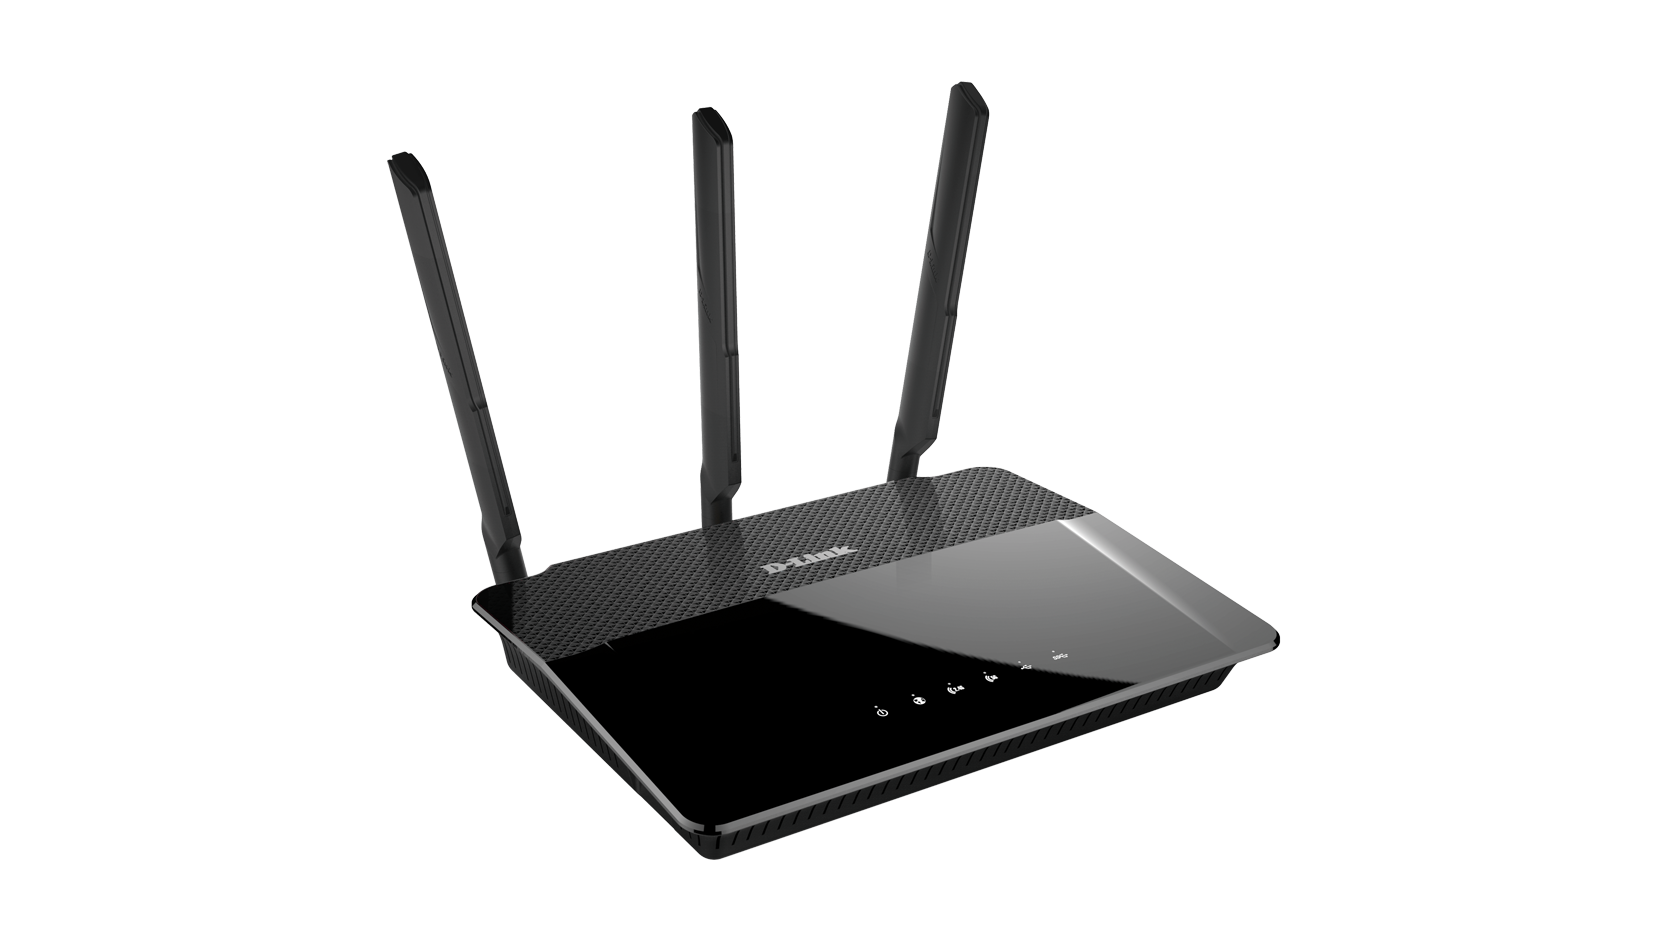 Bộ phát sóng WiFi D-Link DIR-880L - (Wireless AC1900 Cloud Router)